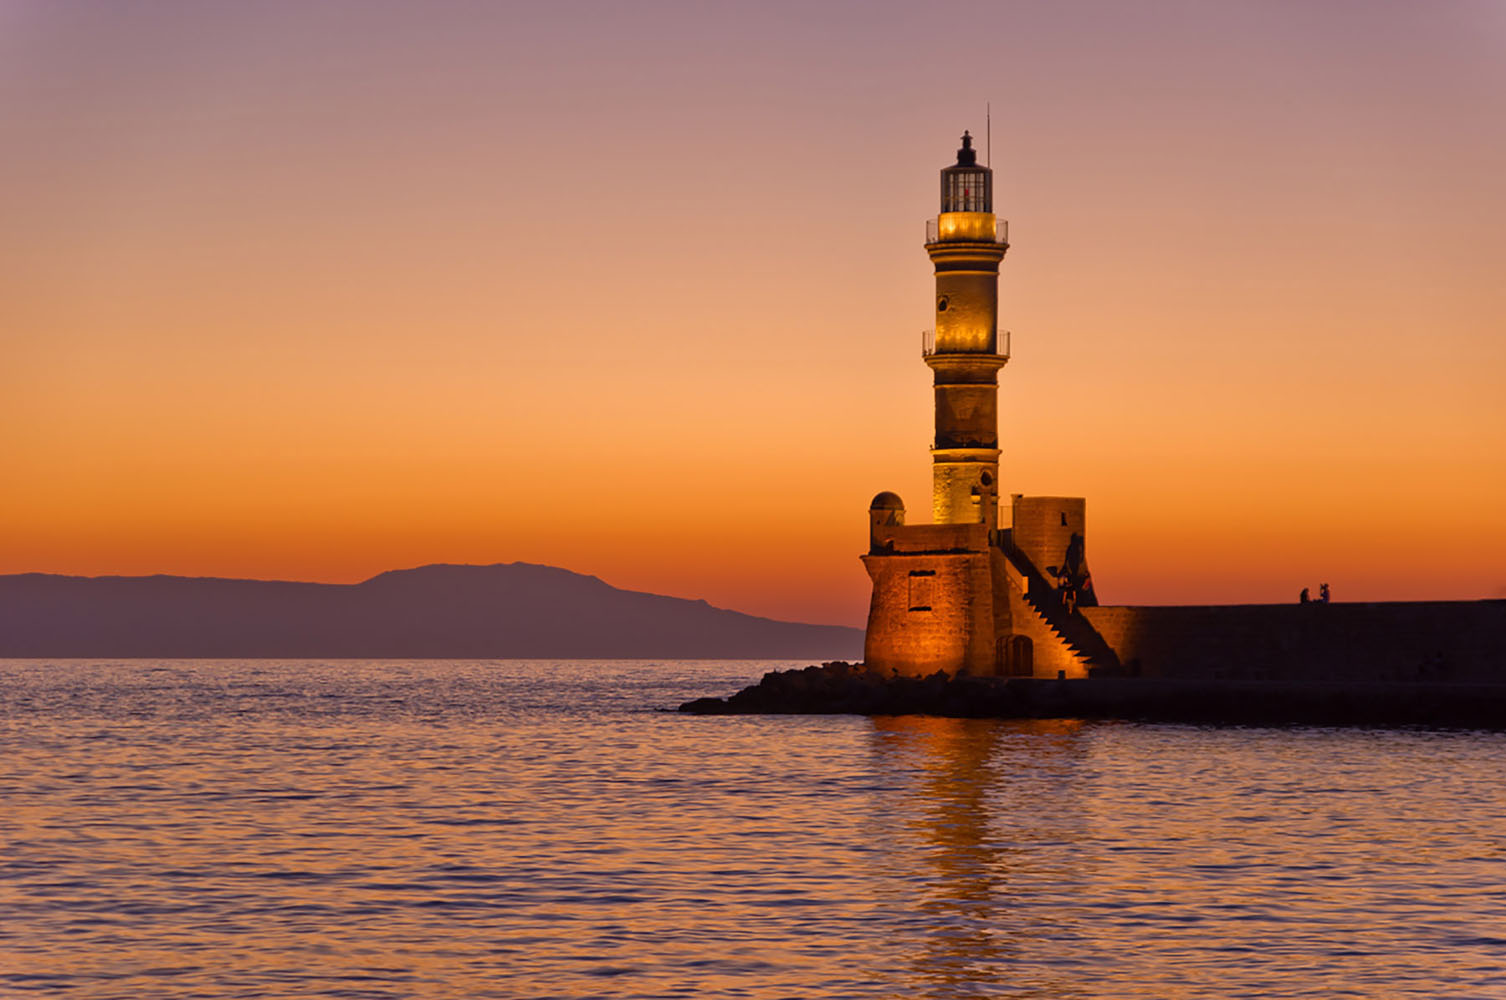 Sunset in Chania, Crete.